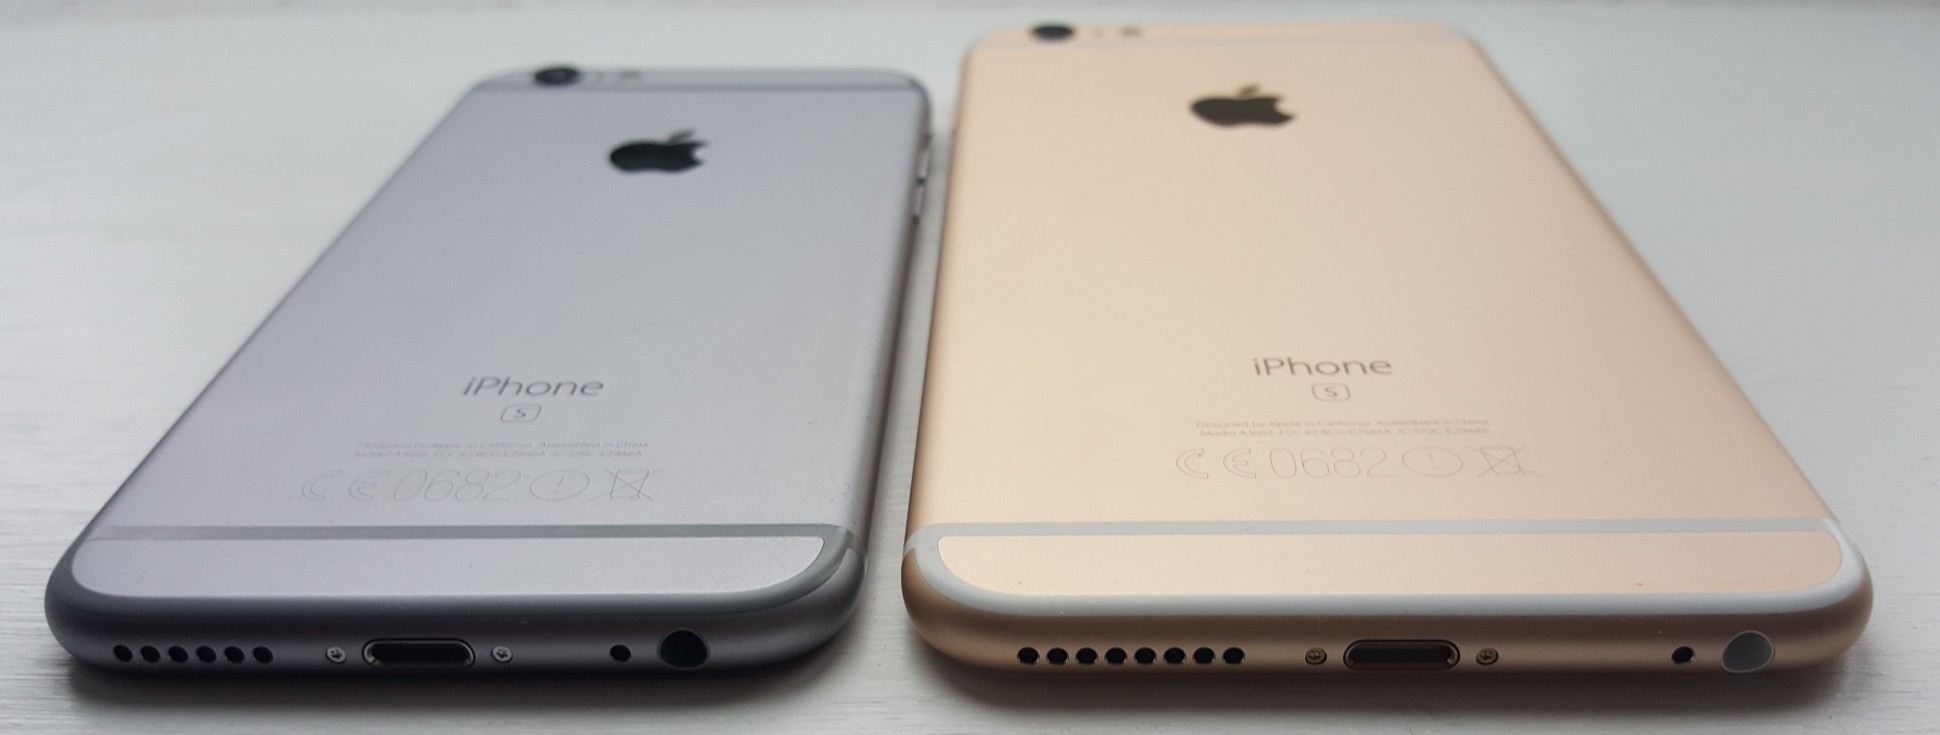 iphone 6s vs 6s plus-1